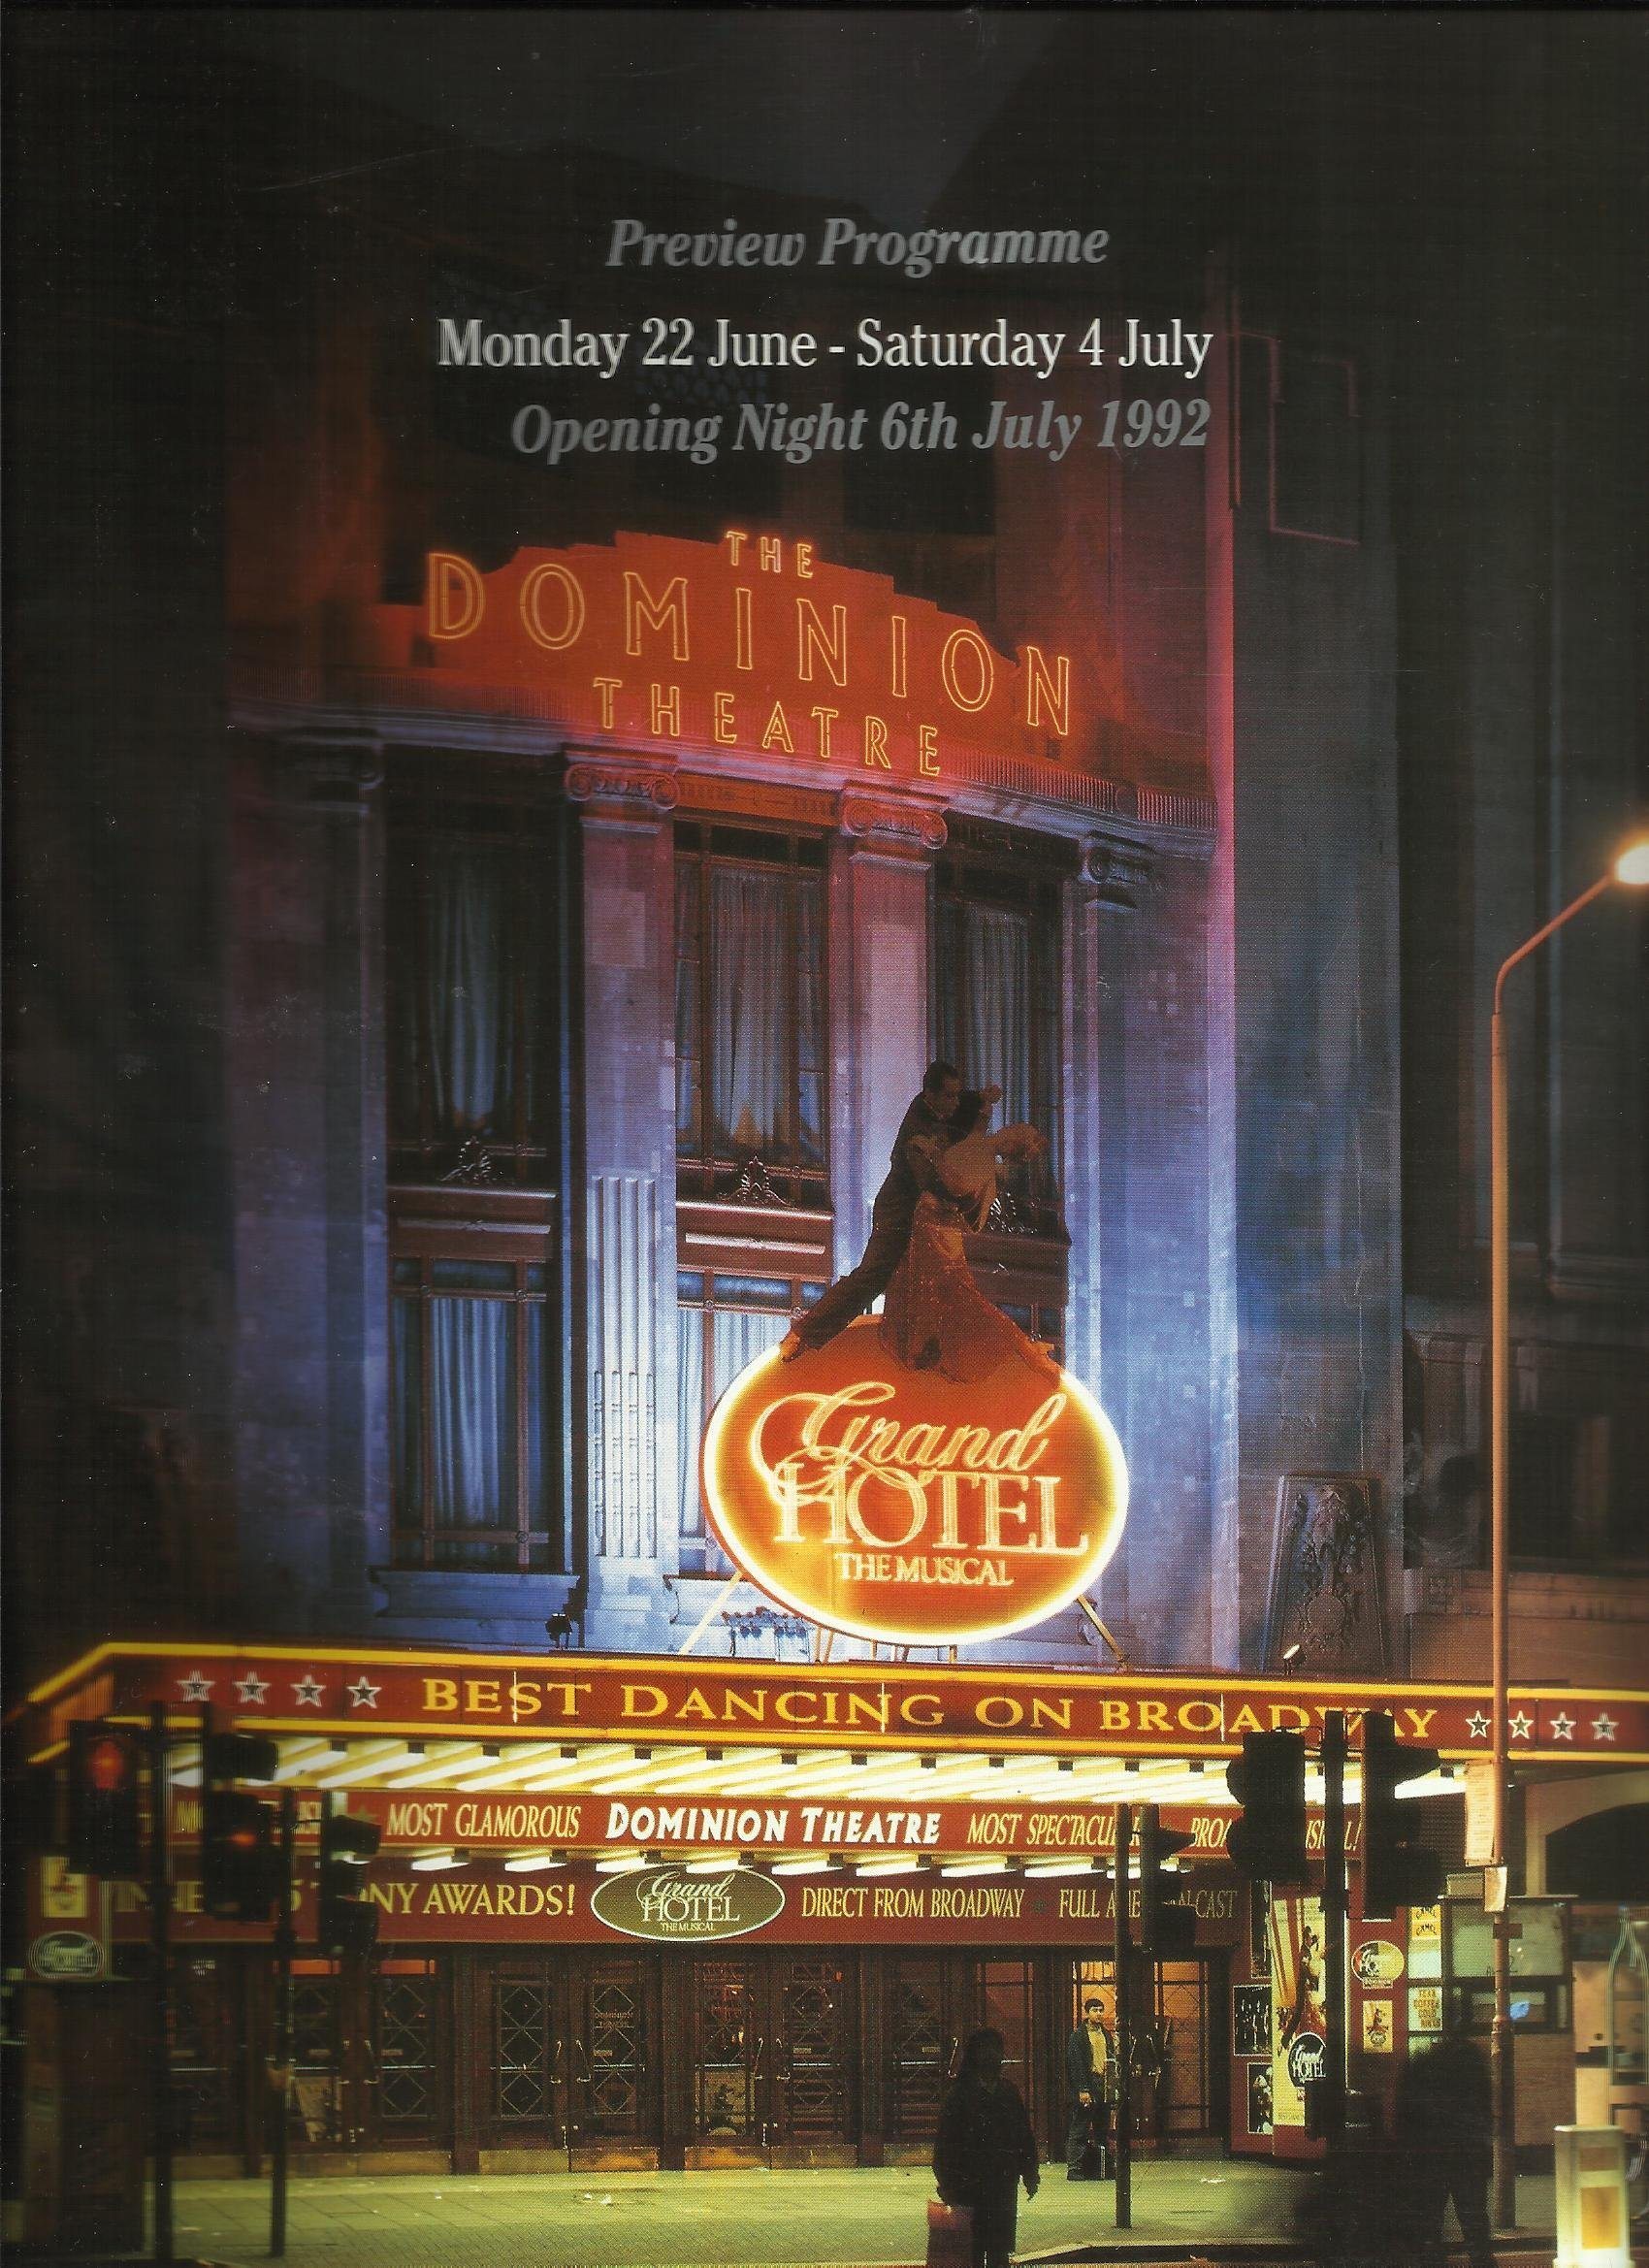 Grand Hotel The Musical Preview Programme 1992 Amazon Co Uk Luther Davis Robert Wright George Forrest Books